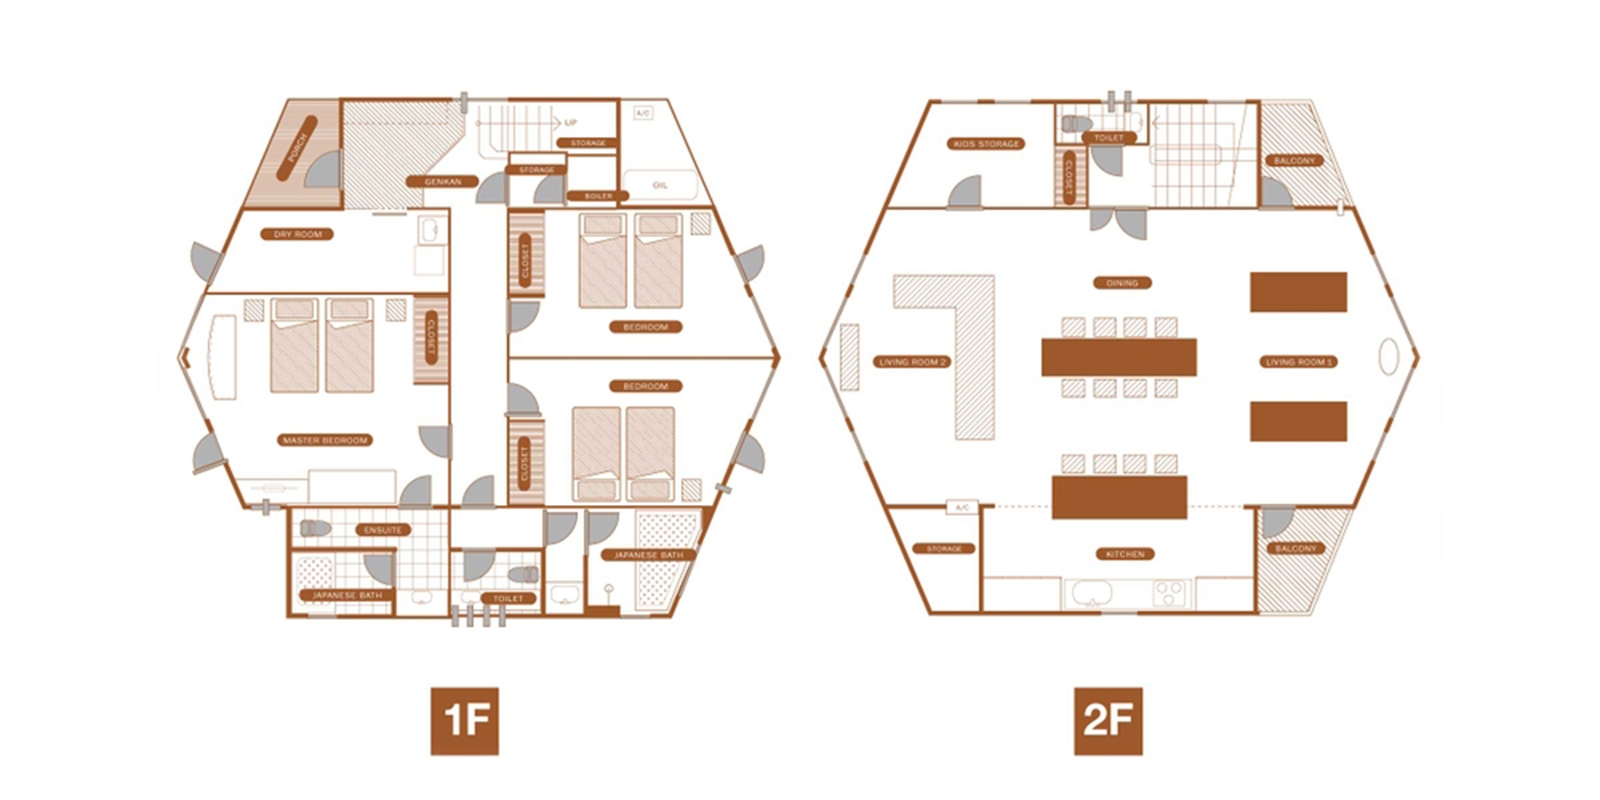 The Orchards Niseko Kaki Floor Plan | St Moritz, Niseko | Ministry of Chalets